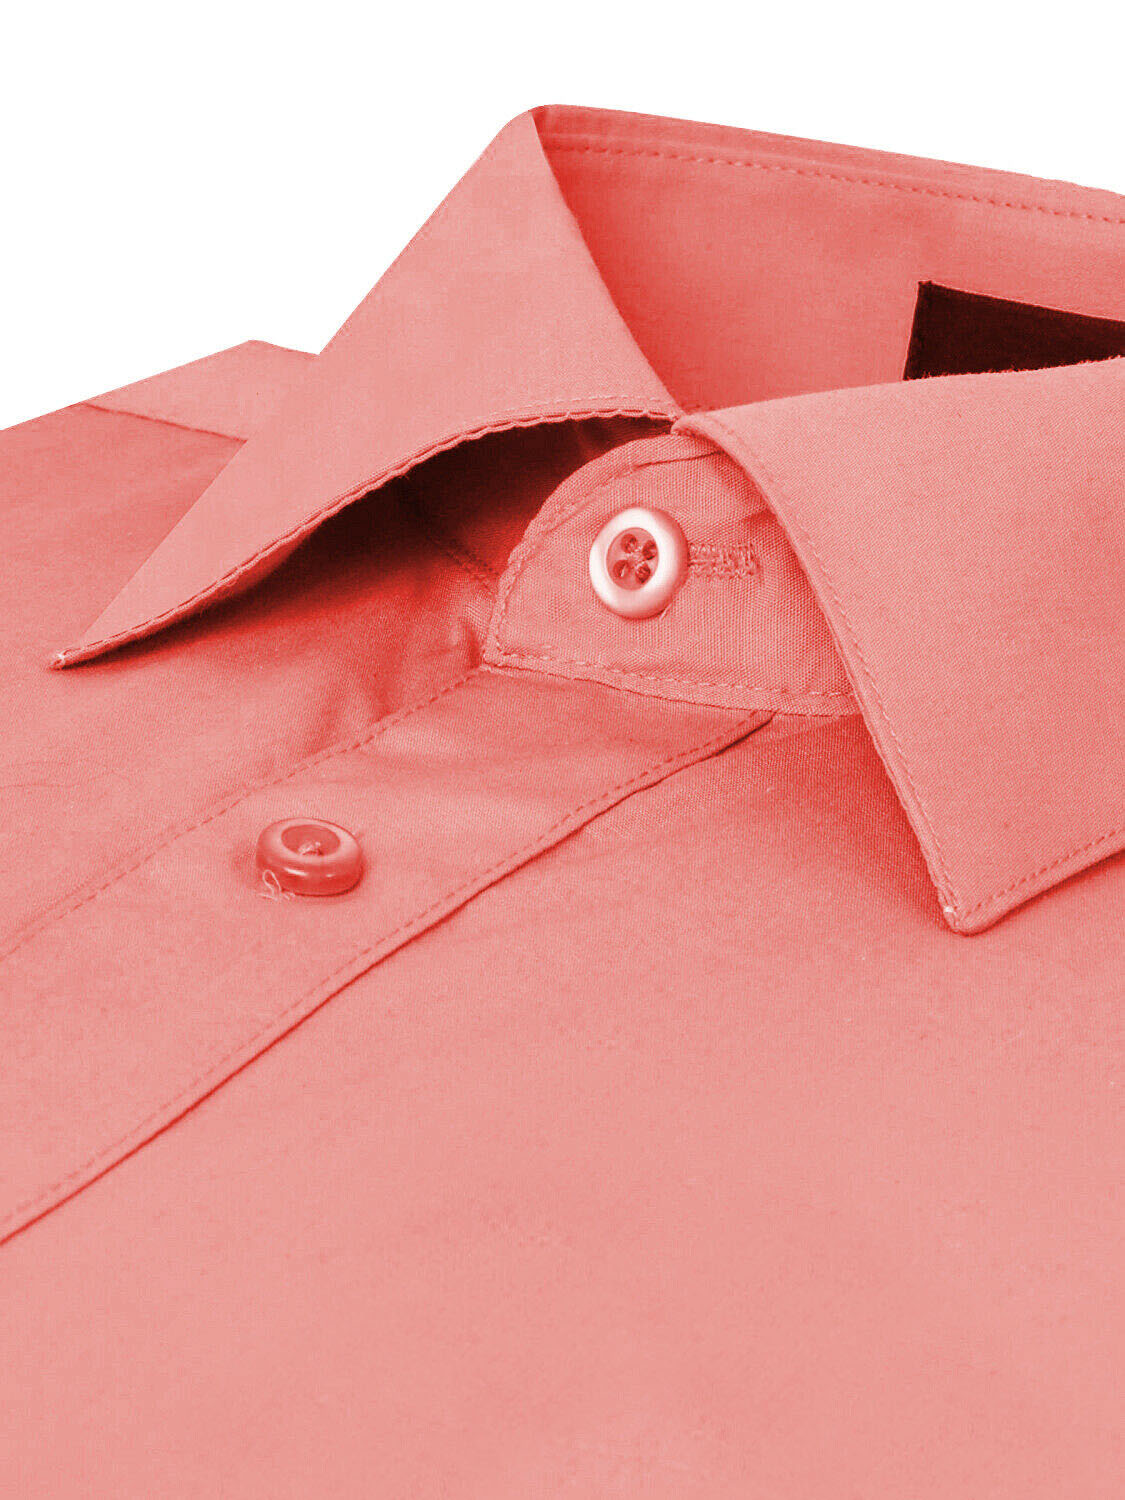 Omega-Italy-Men-039-s-Premium-Slim-Fit-Button-Up-Long-Sleeve-Solid-Color-Dress-Shirt thumbnail 25